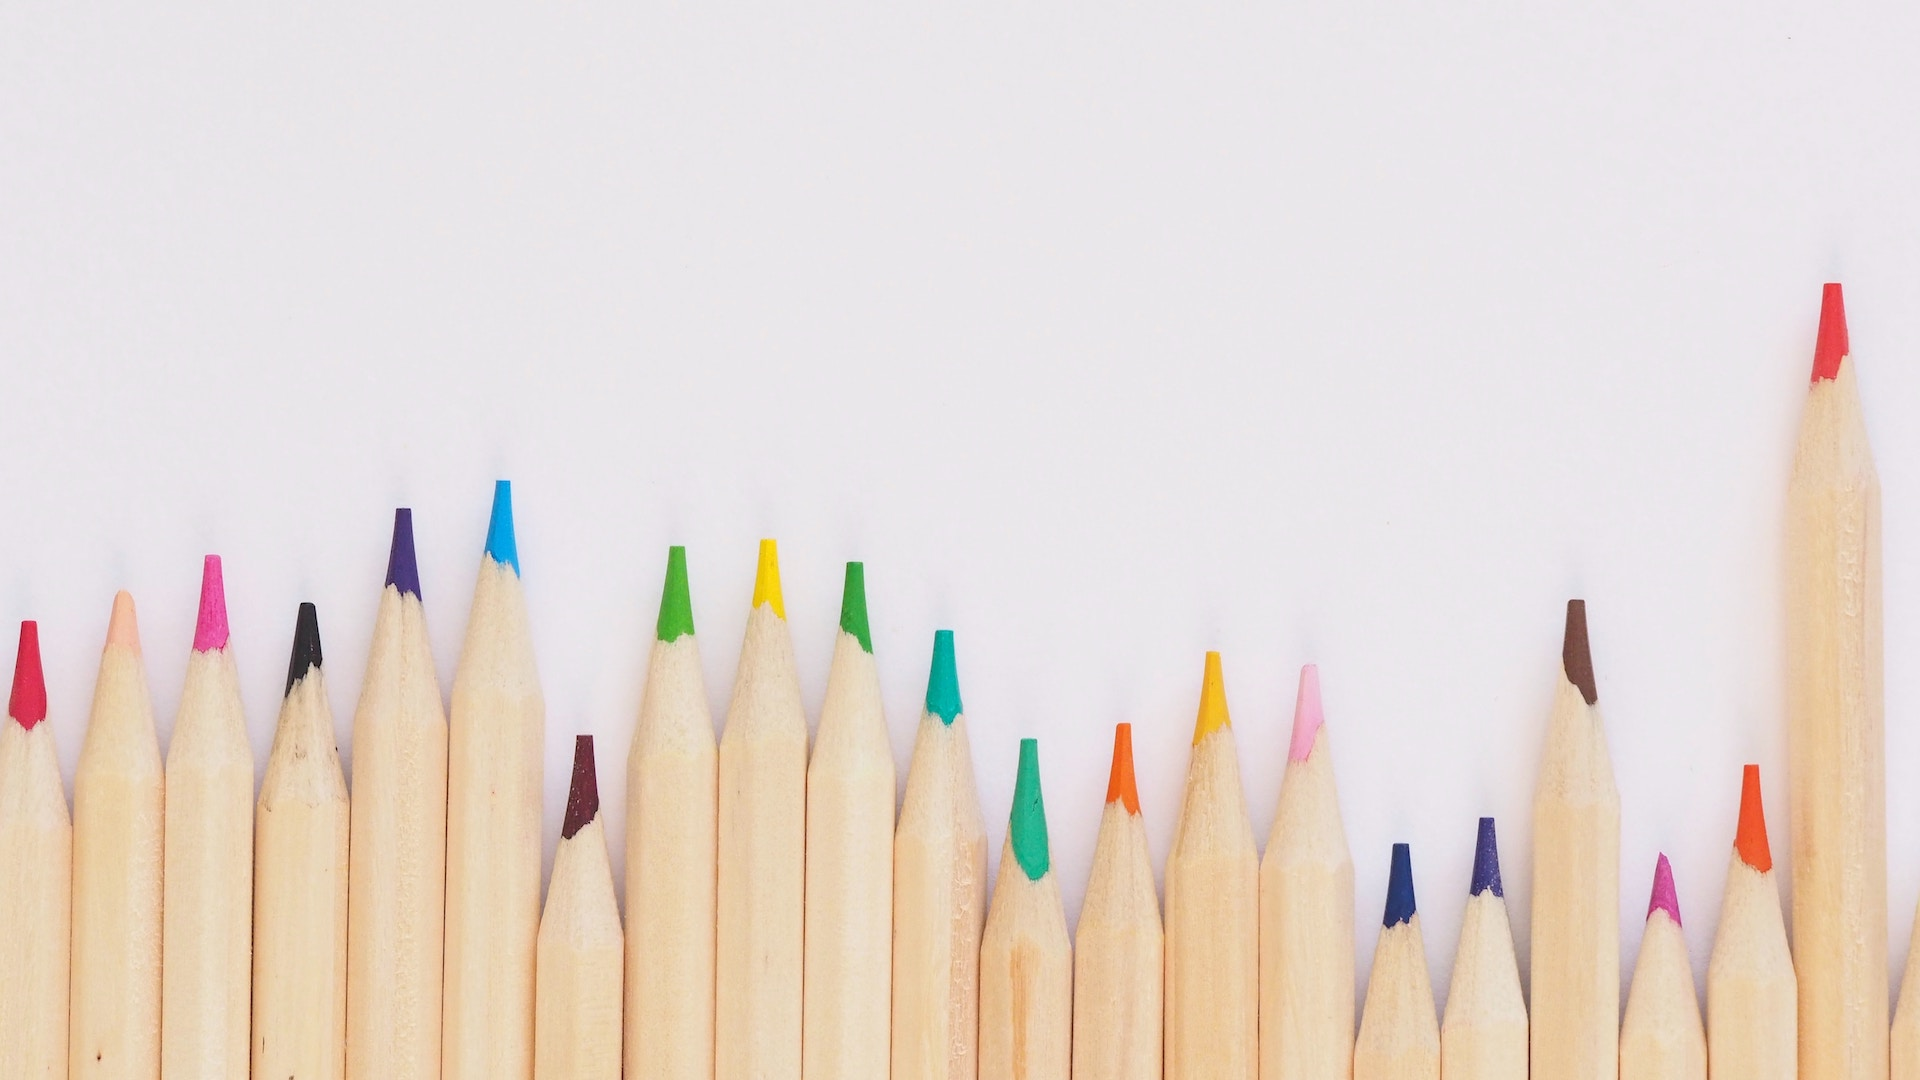 The Color Theory: How To Choose Compatible Colors